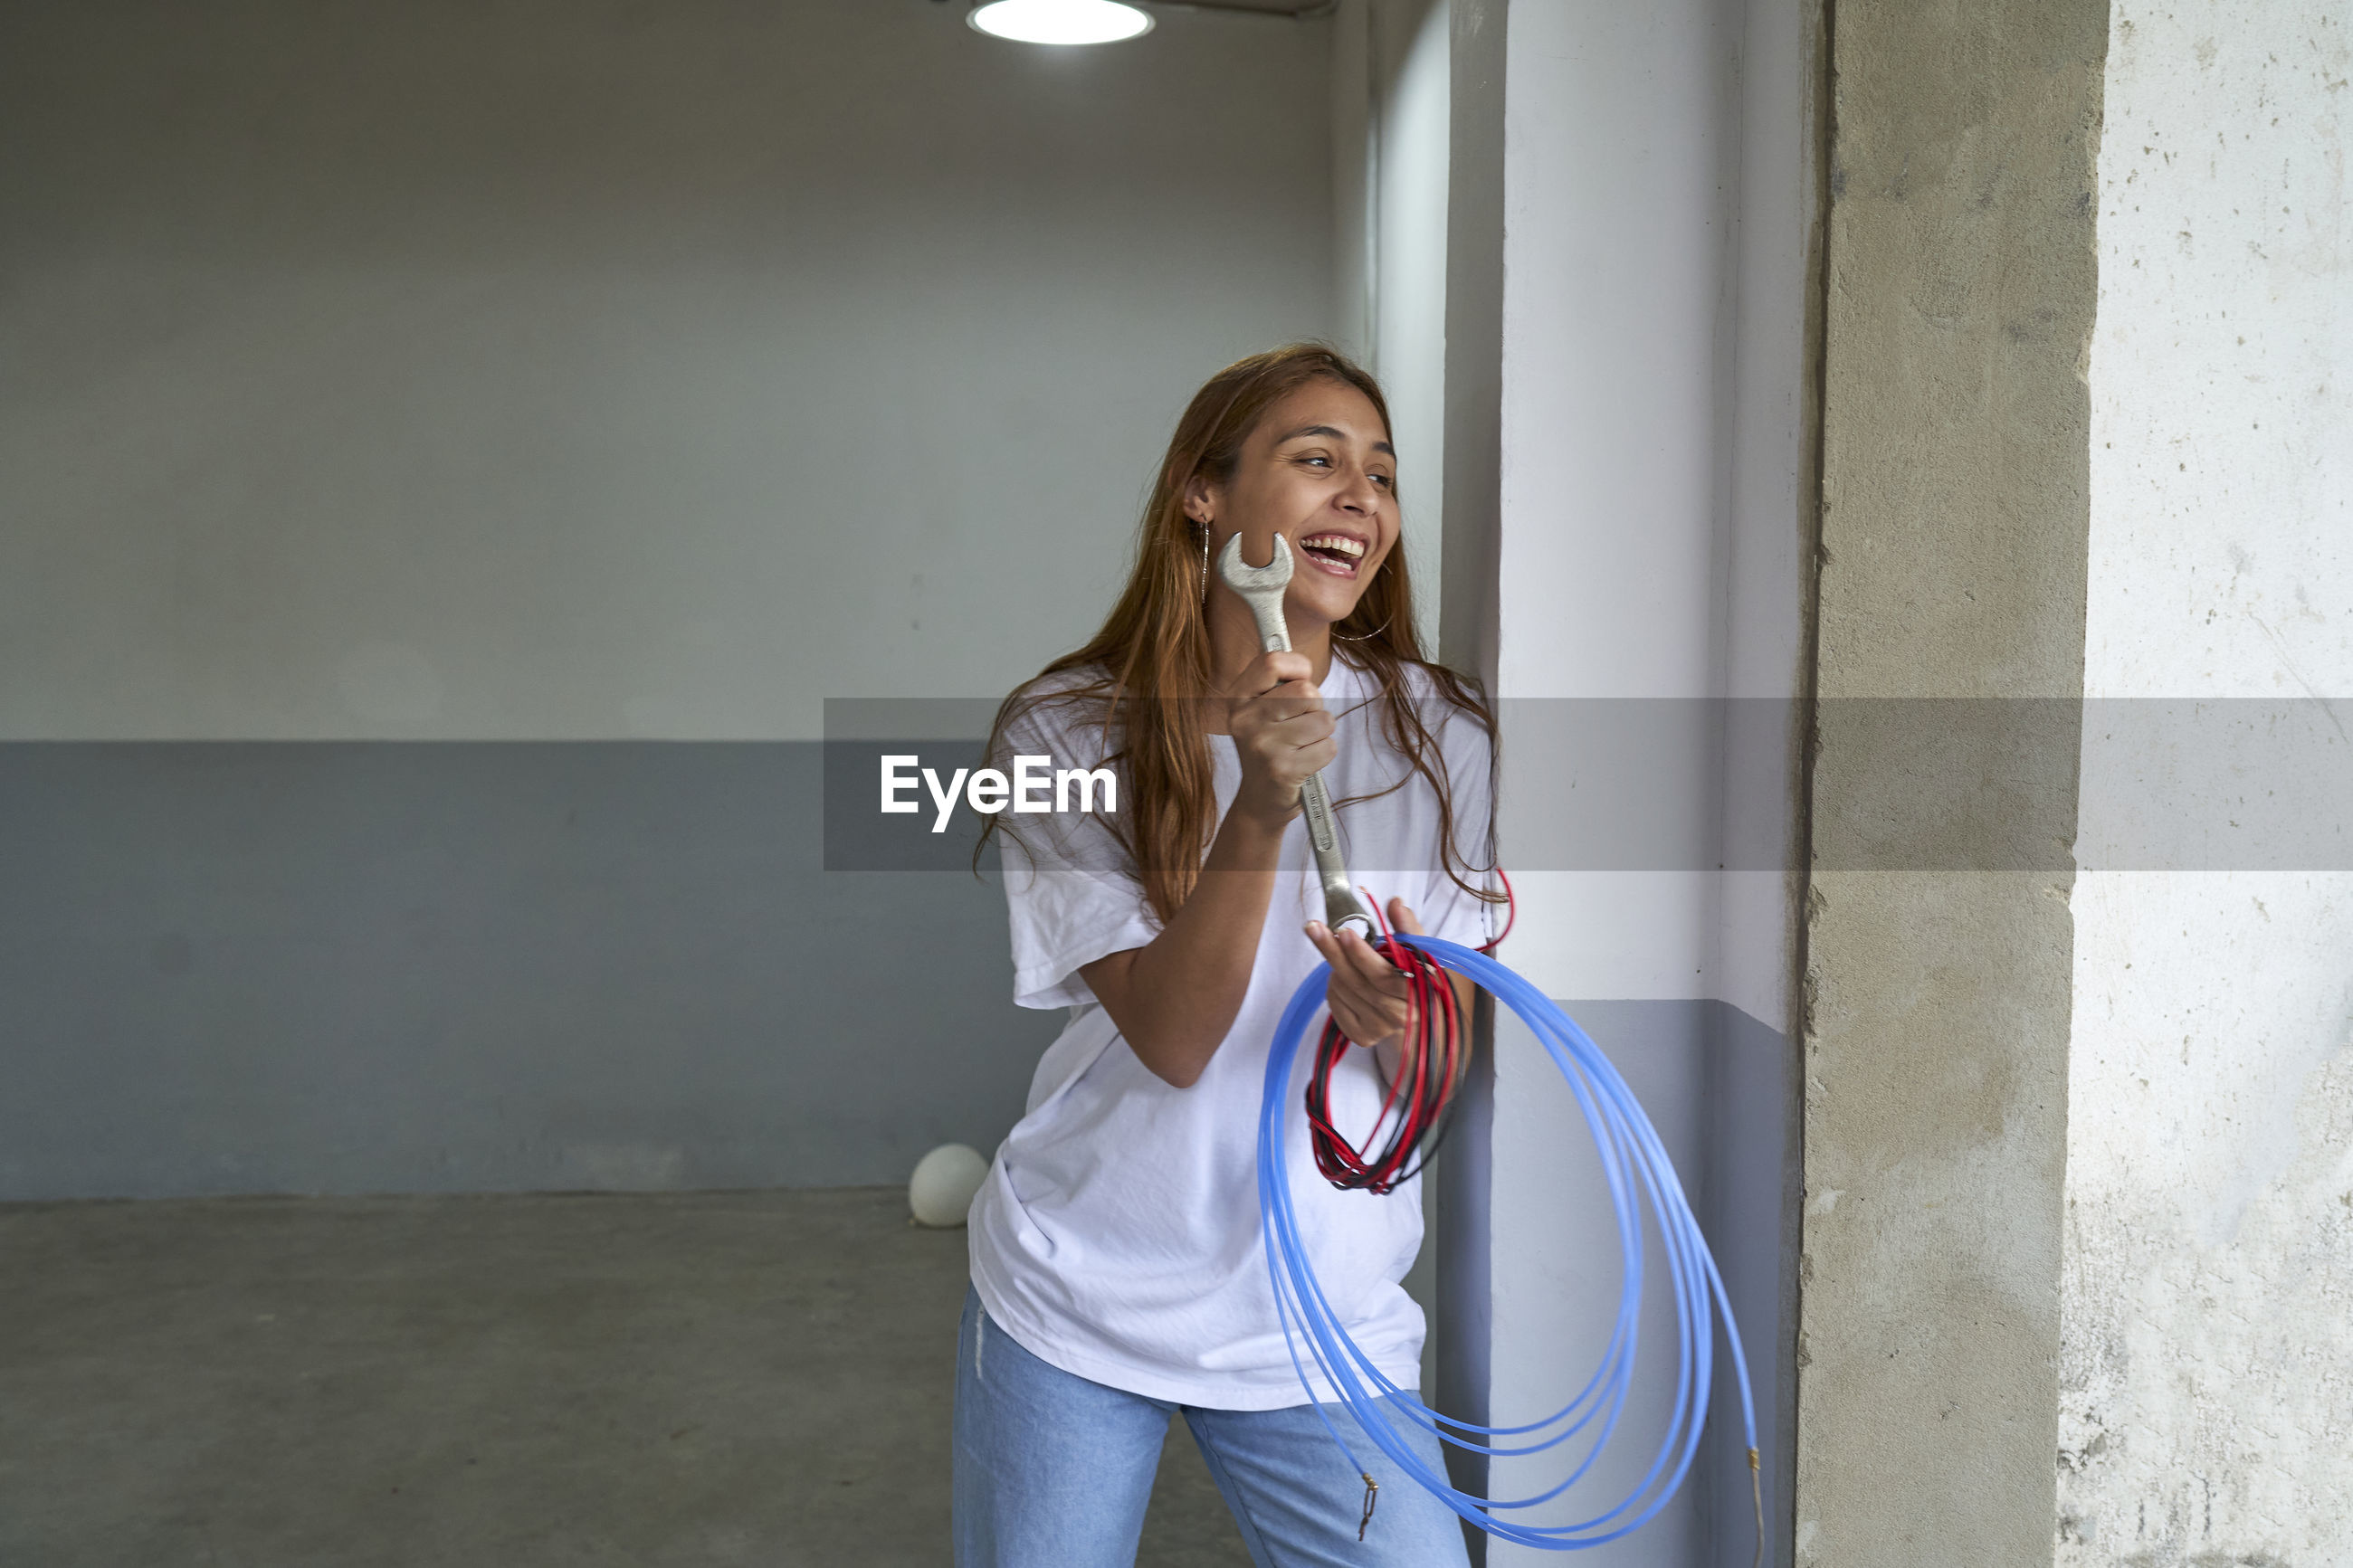 YOUNG WOMAN SMILING AGAINST WALL